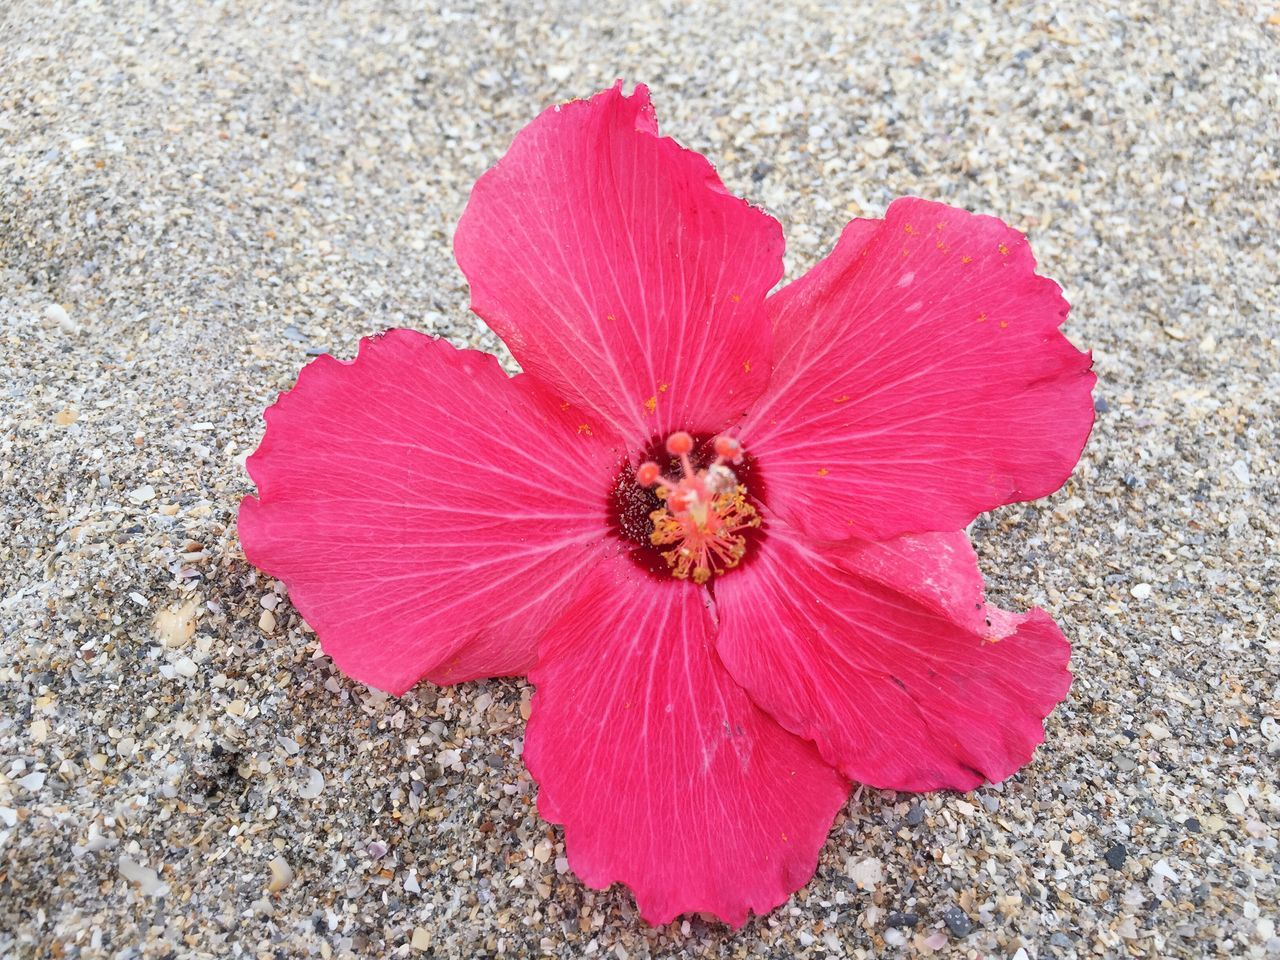 Flower Petal Nature Flower Head Fragility Day Outdoors Pink Color Hibiscus Beach Life No People Beach Photography Beauty In Nature Pollen One Animal Freshness Animals In The Wild Growth Close-up Animal Themes Blooming